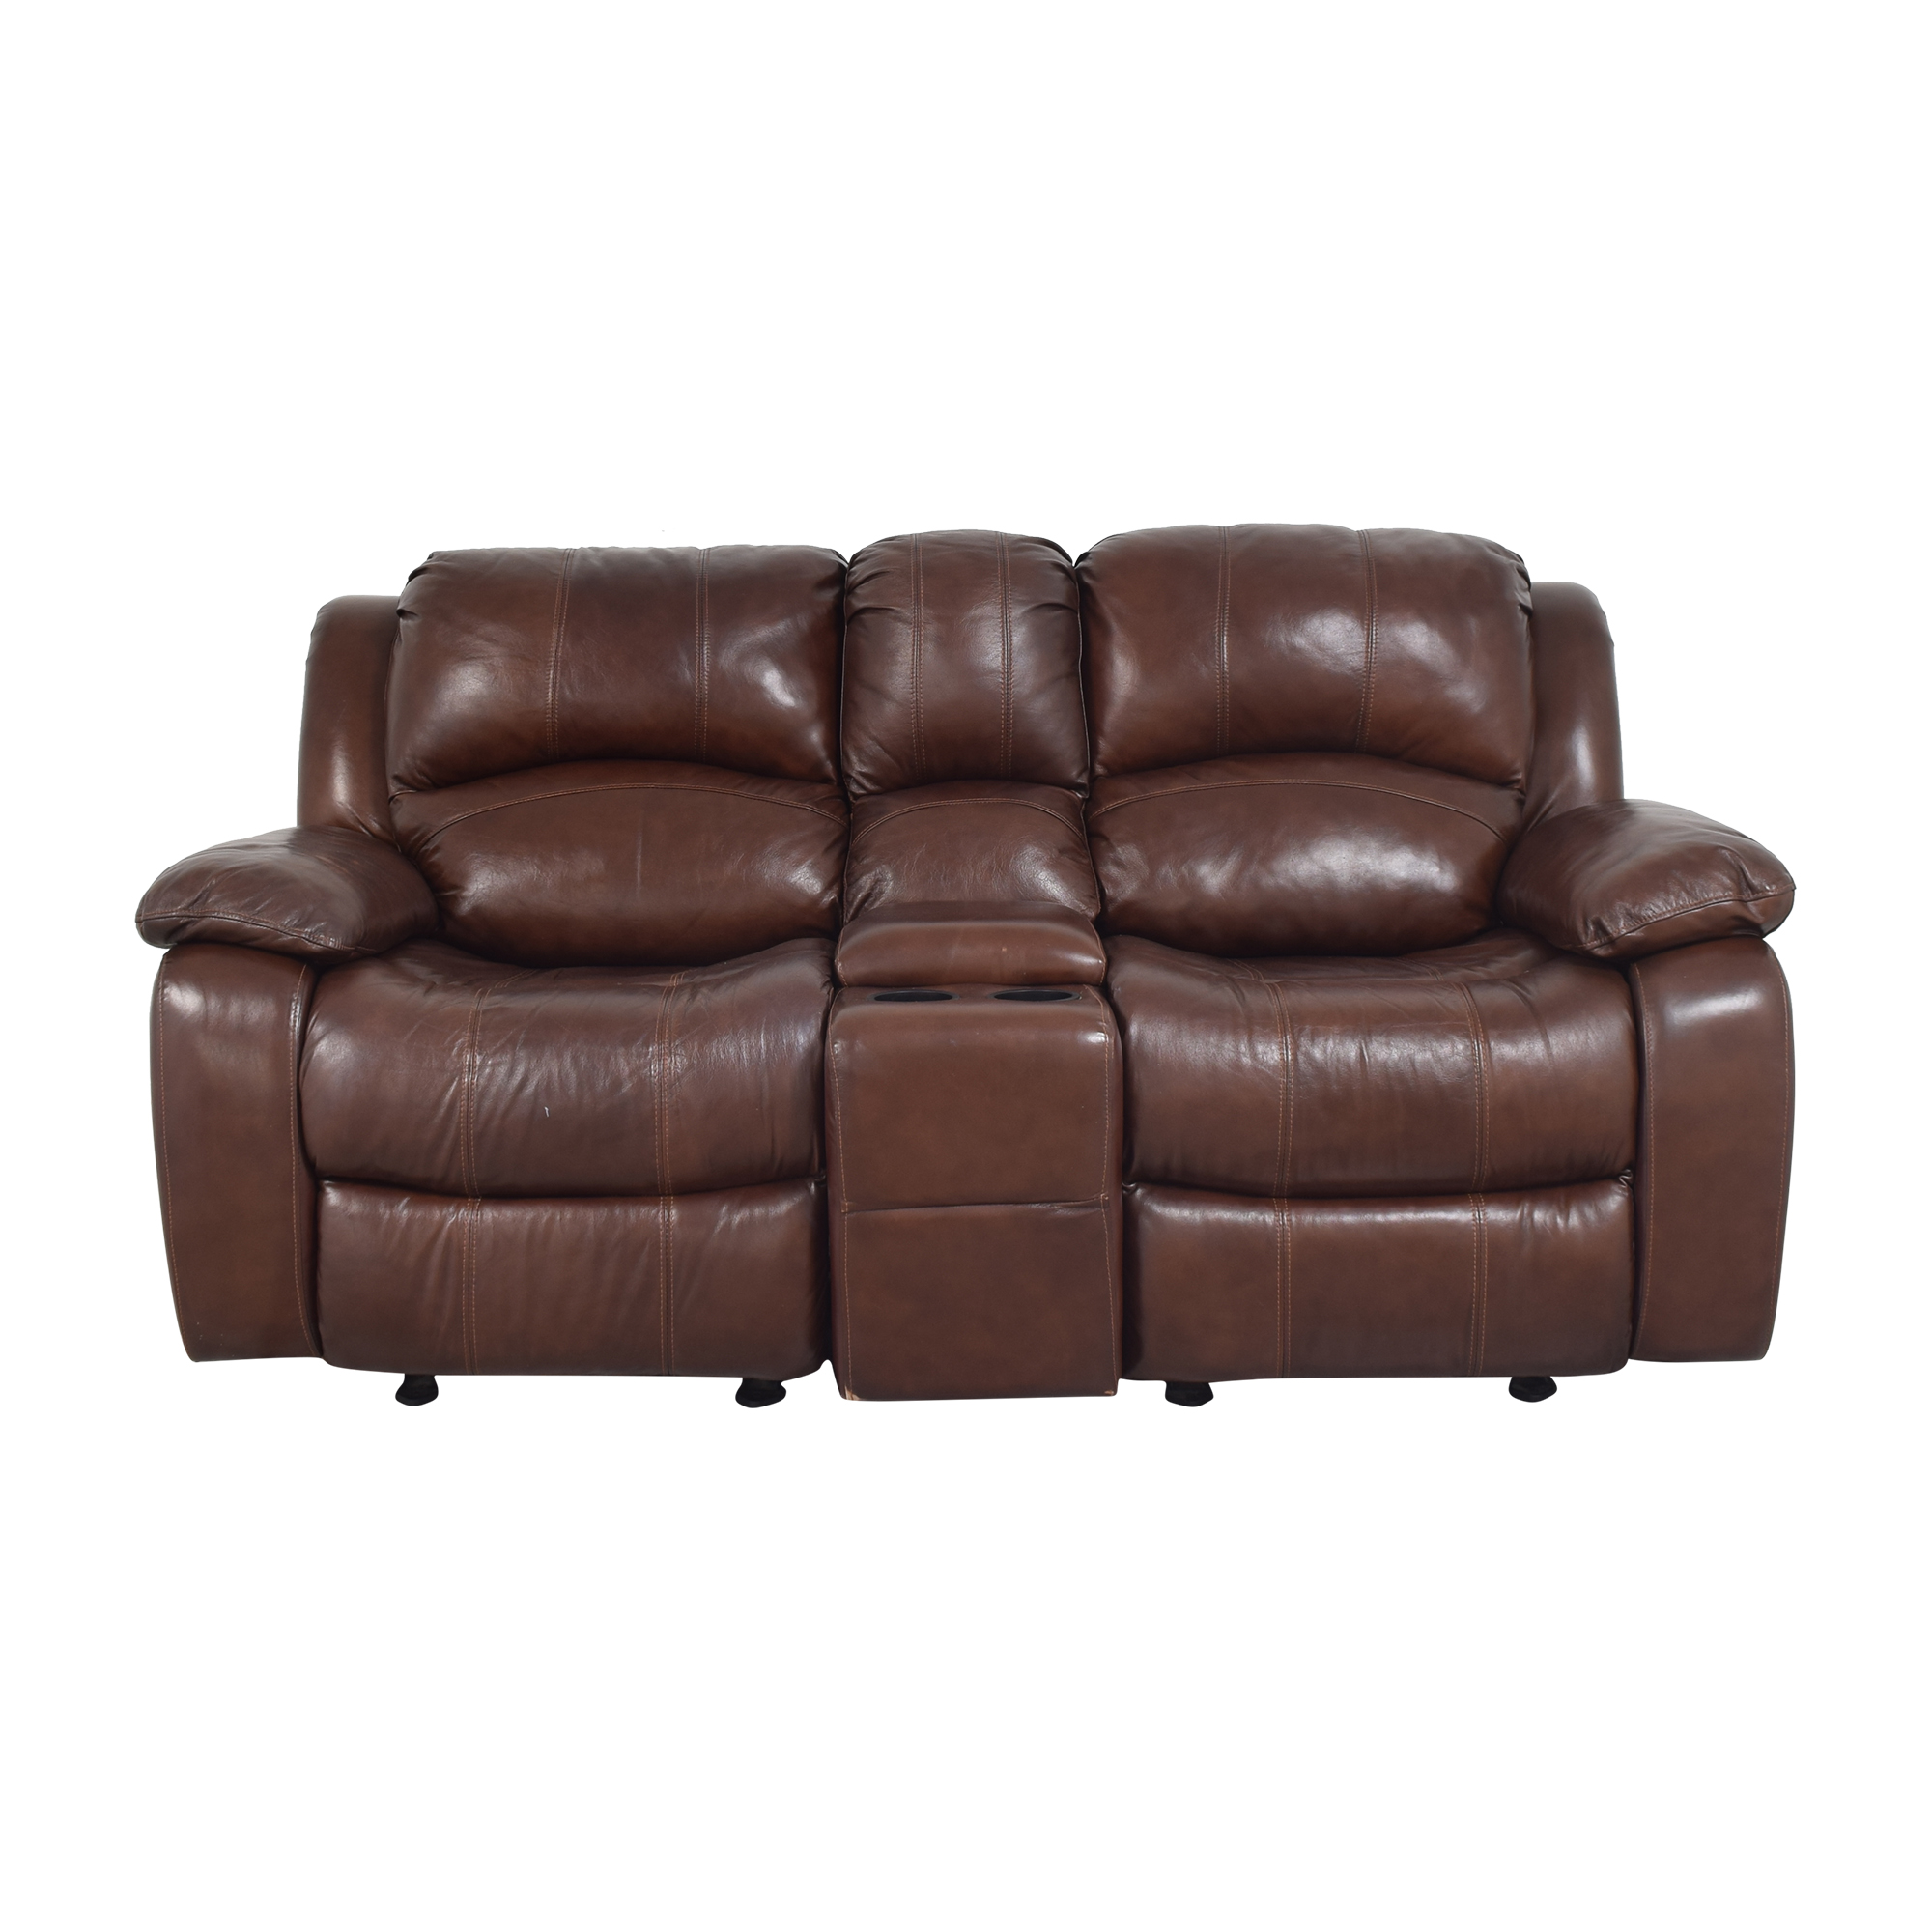 Raymour & Flanigan Raymour & Flanigan Double Rocker Reclining Loveseat pa